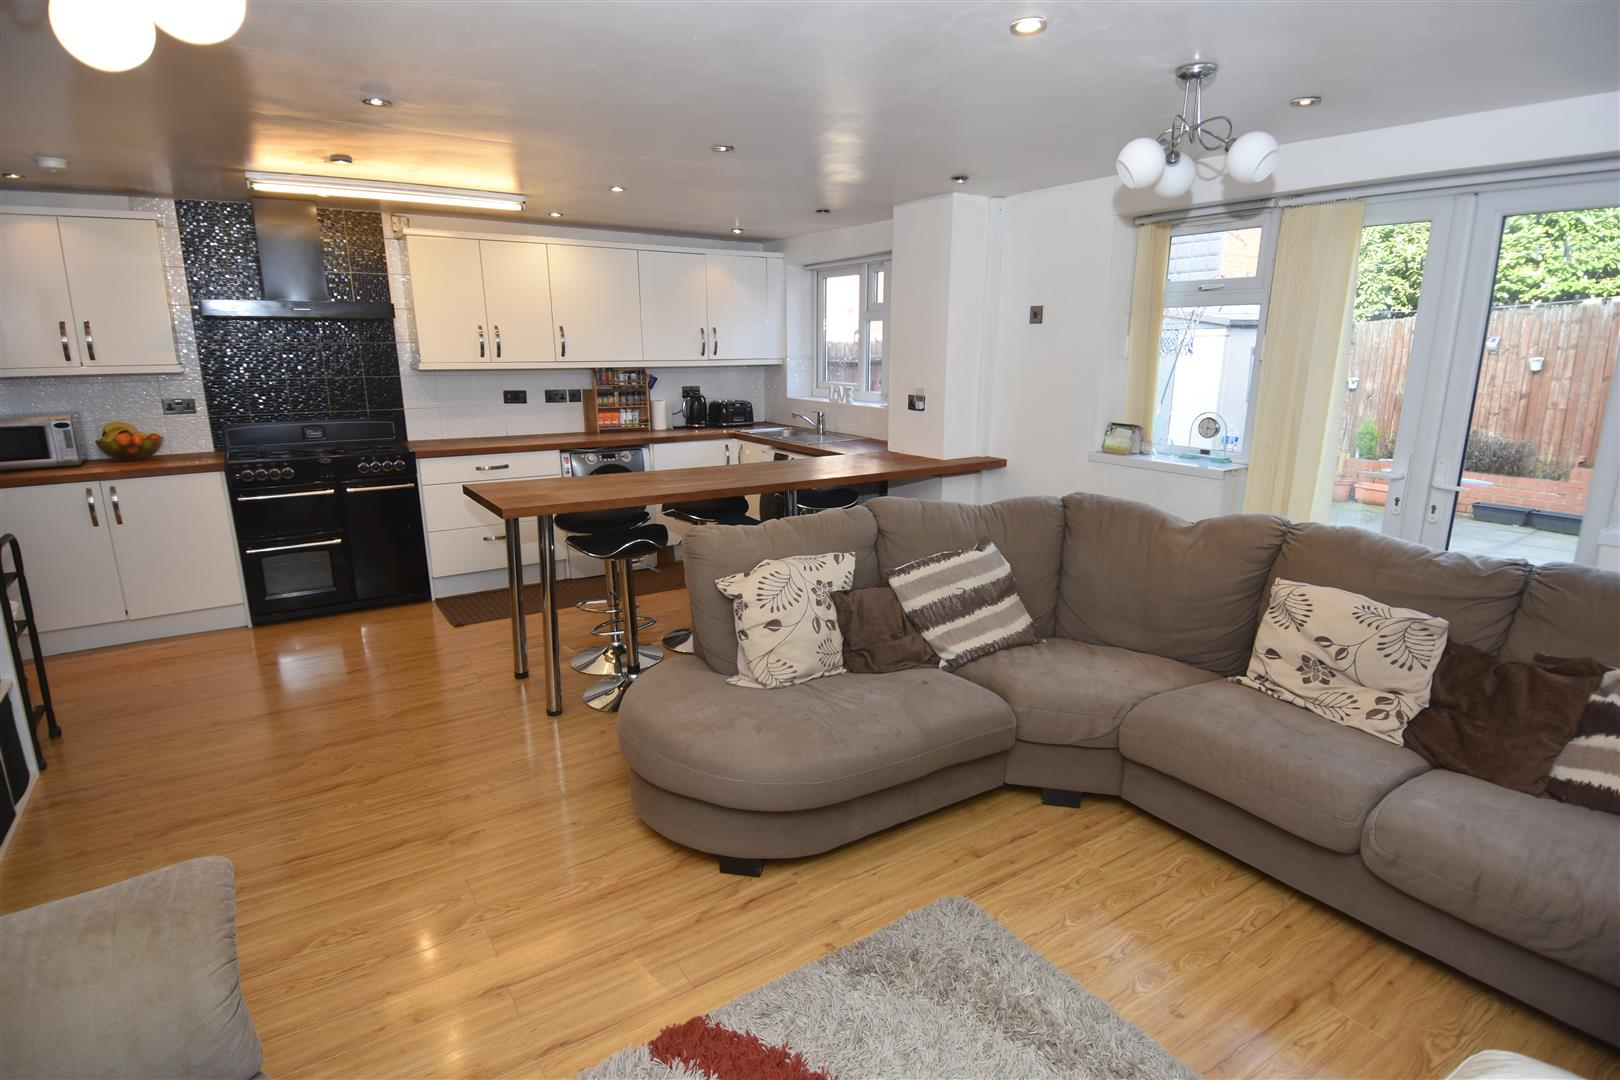 4 bed house for sale in Duddeston Drive, Birmingham 6